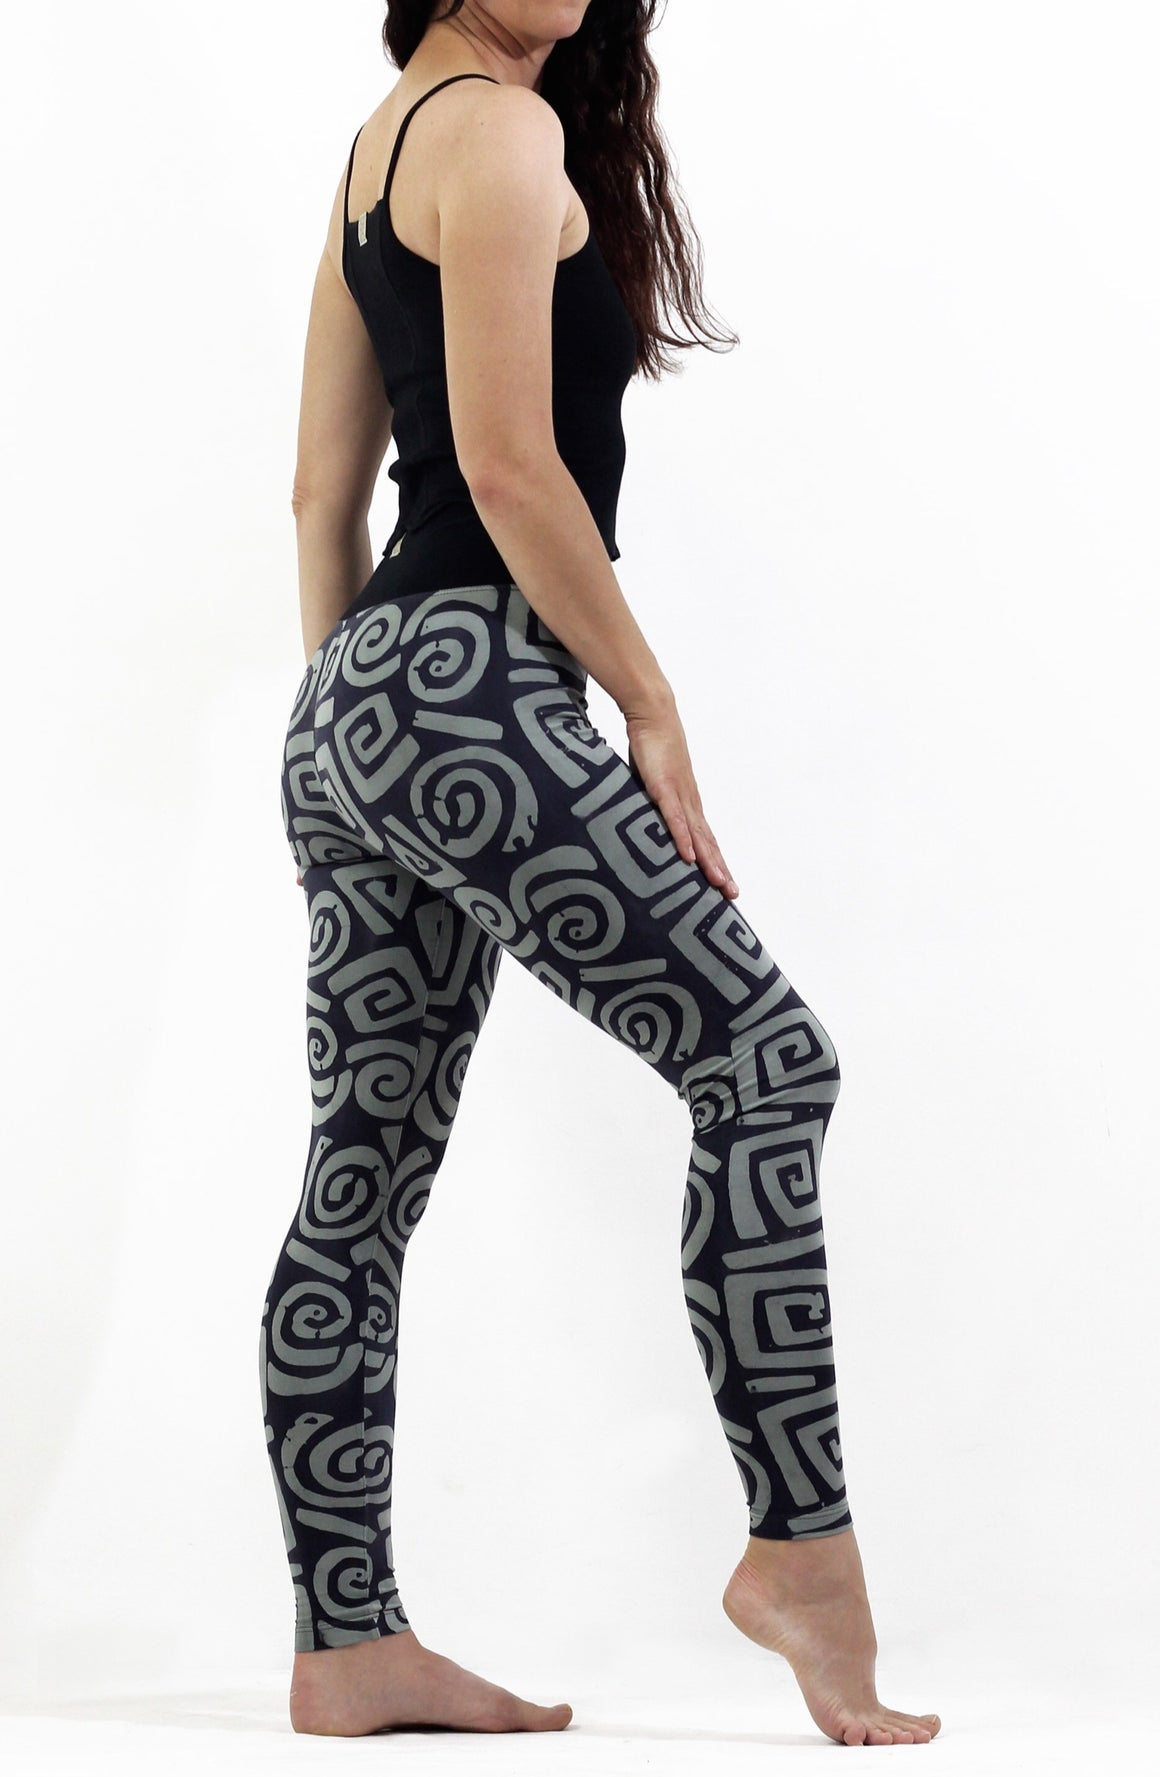 BlackTop Grey Mean - Leggings